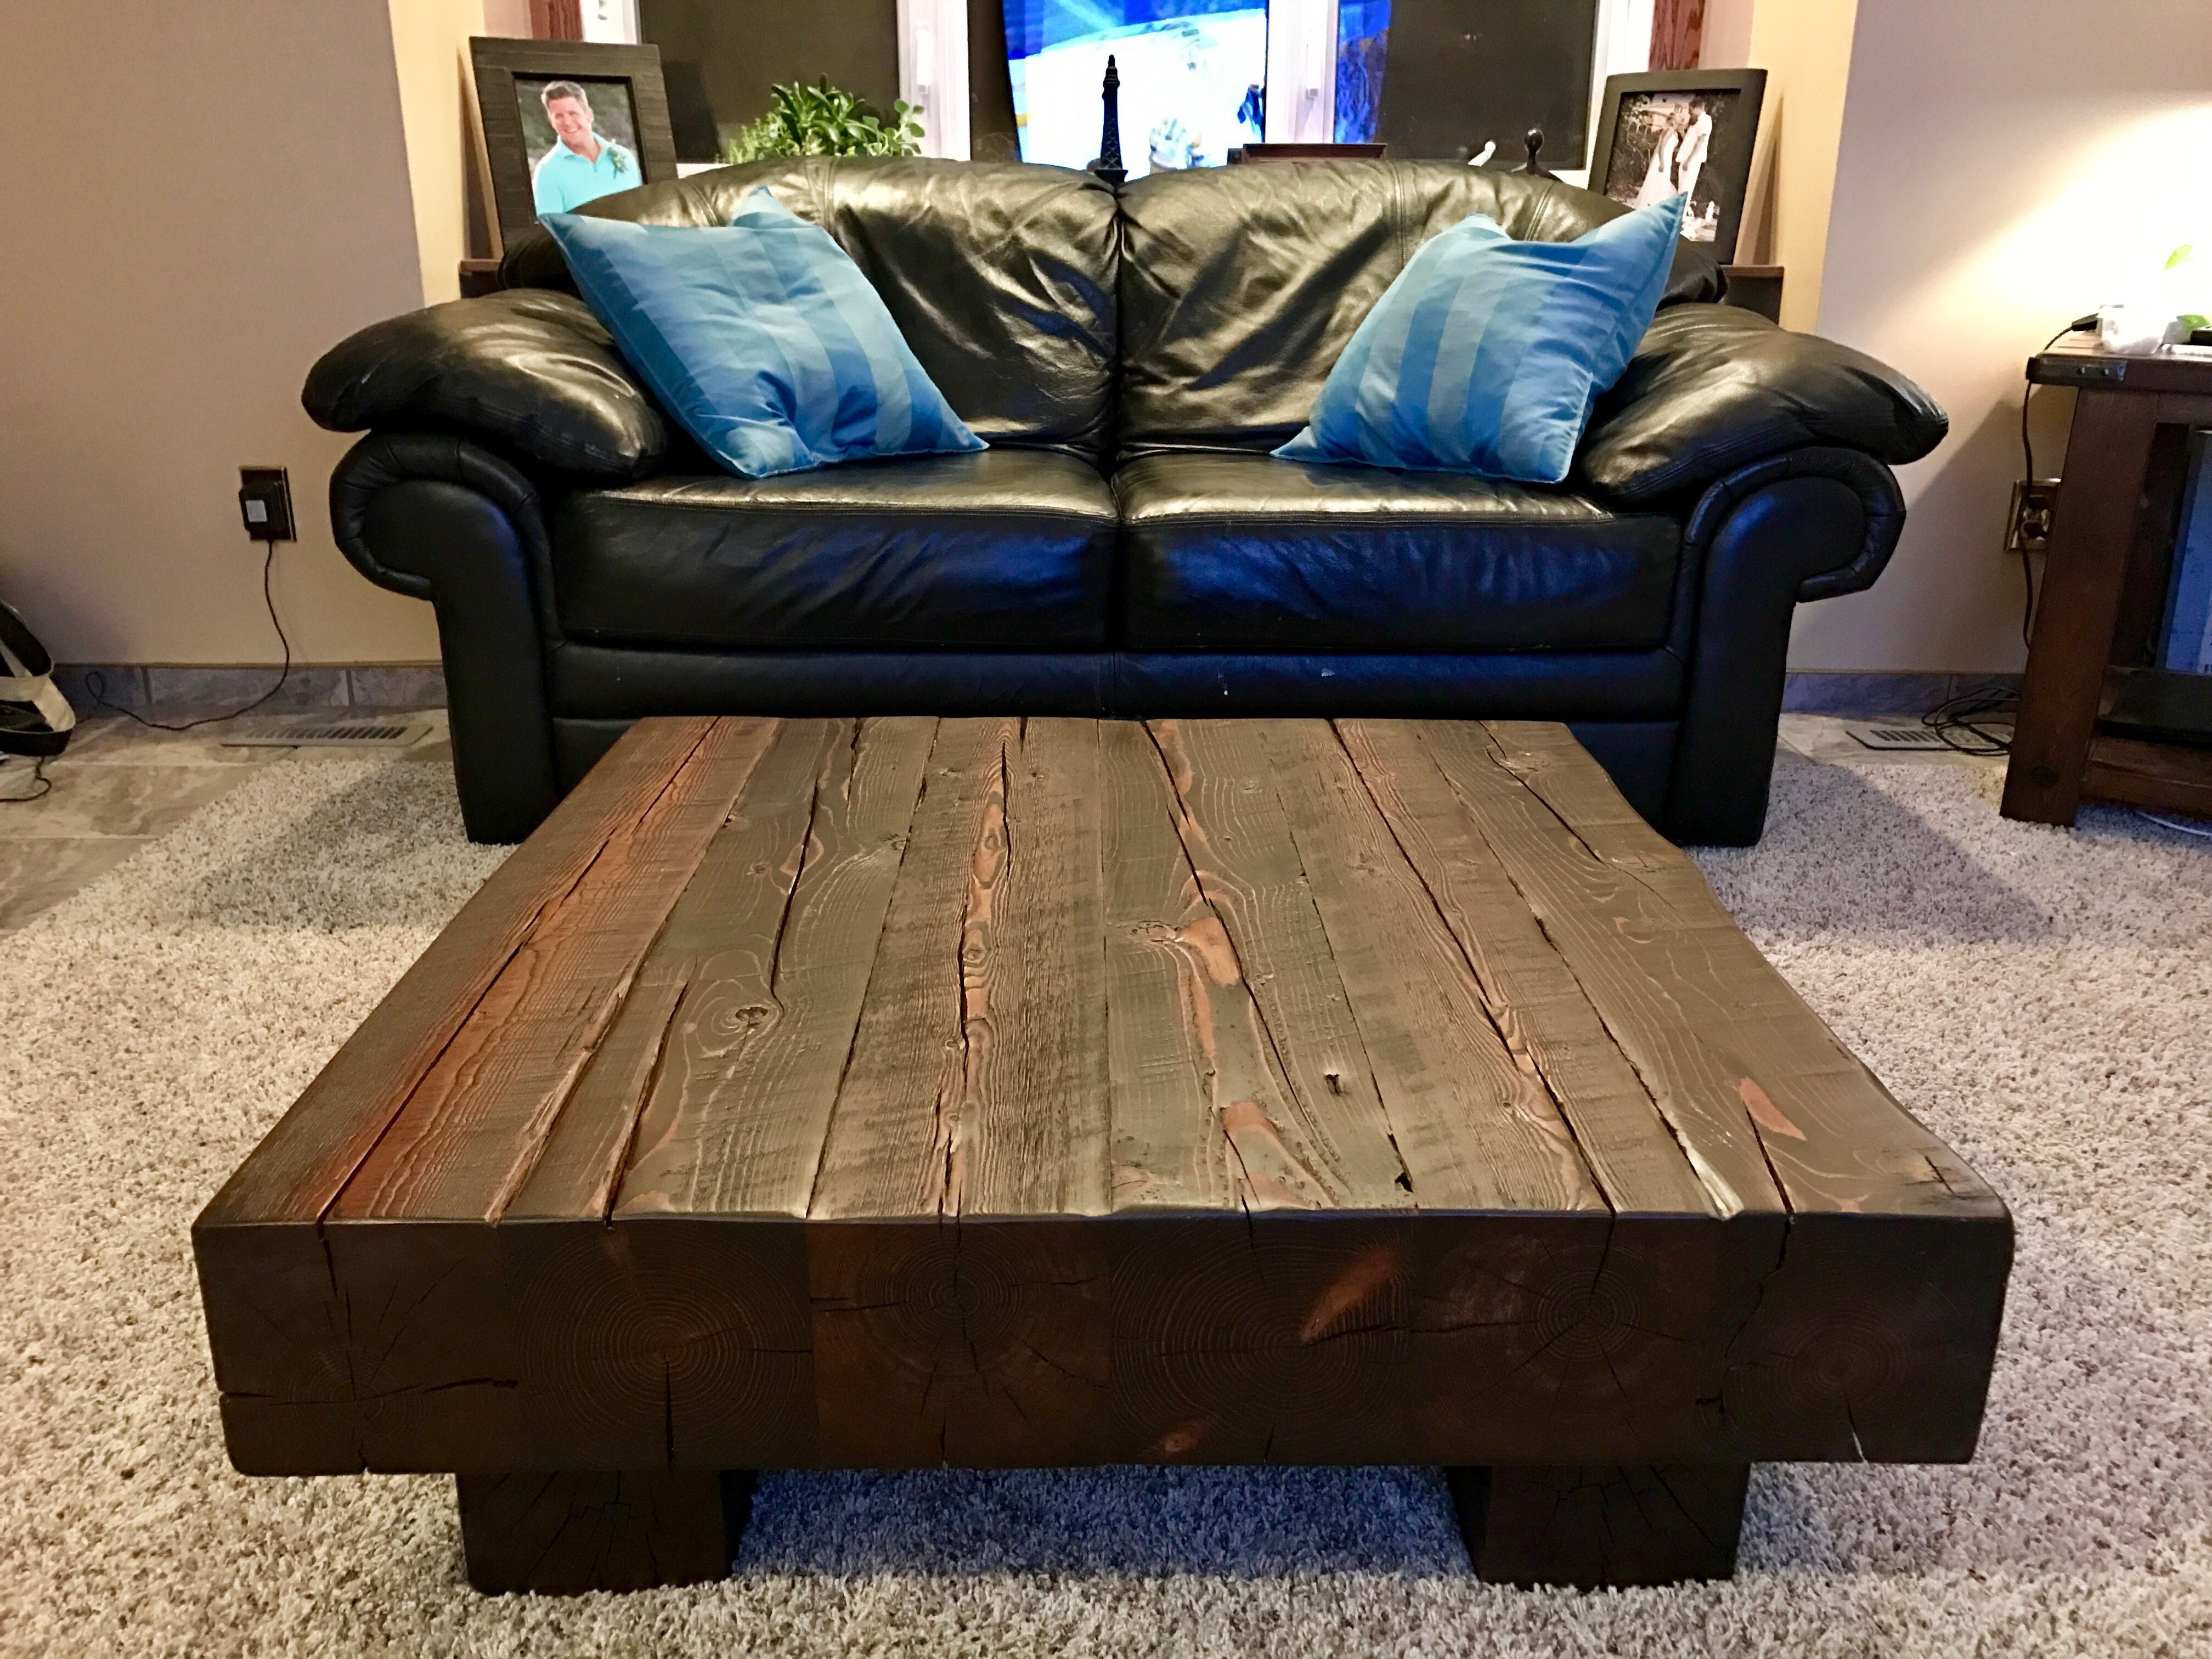 Timber coffee table made from 6x6